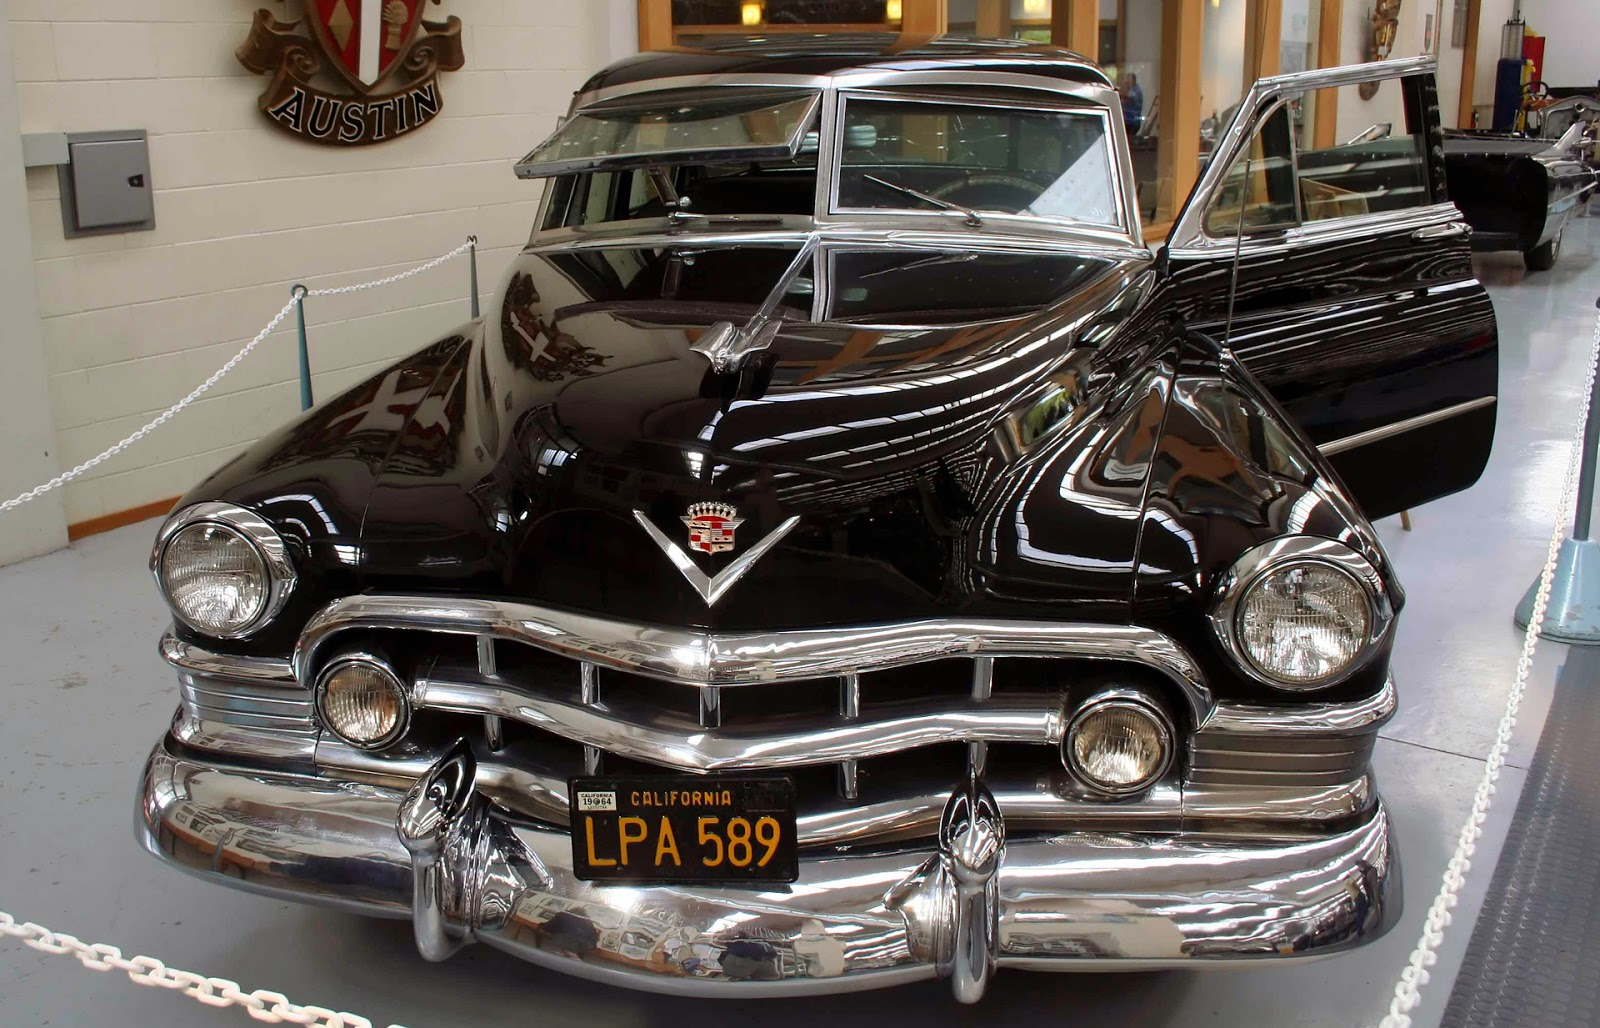 Transpress Nz The Mickey Cohen Gangster Cadillac